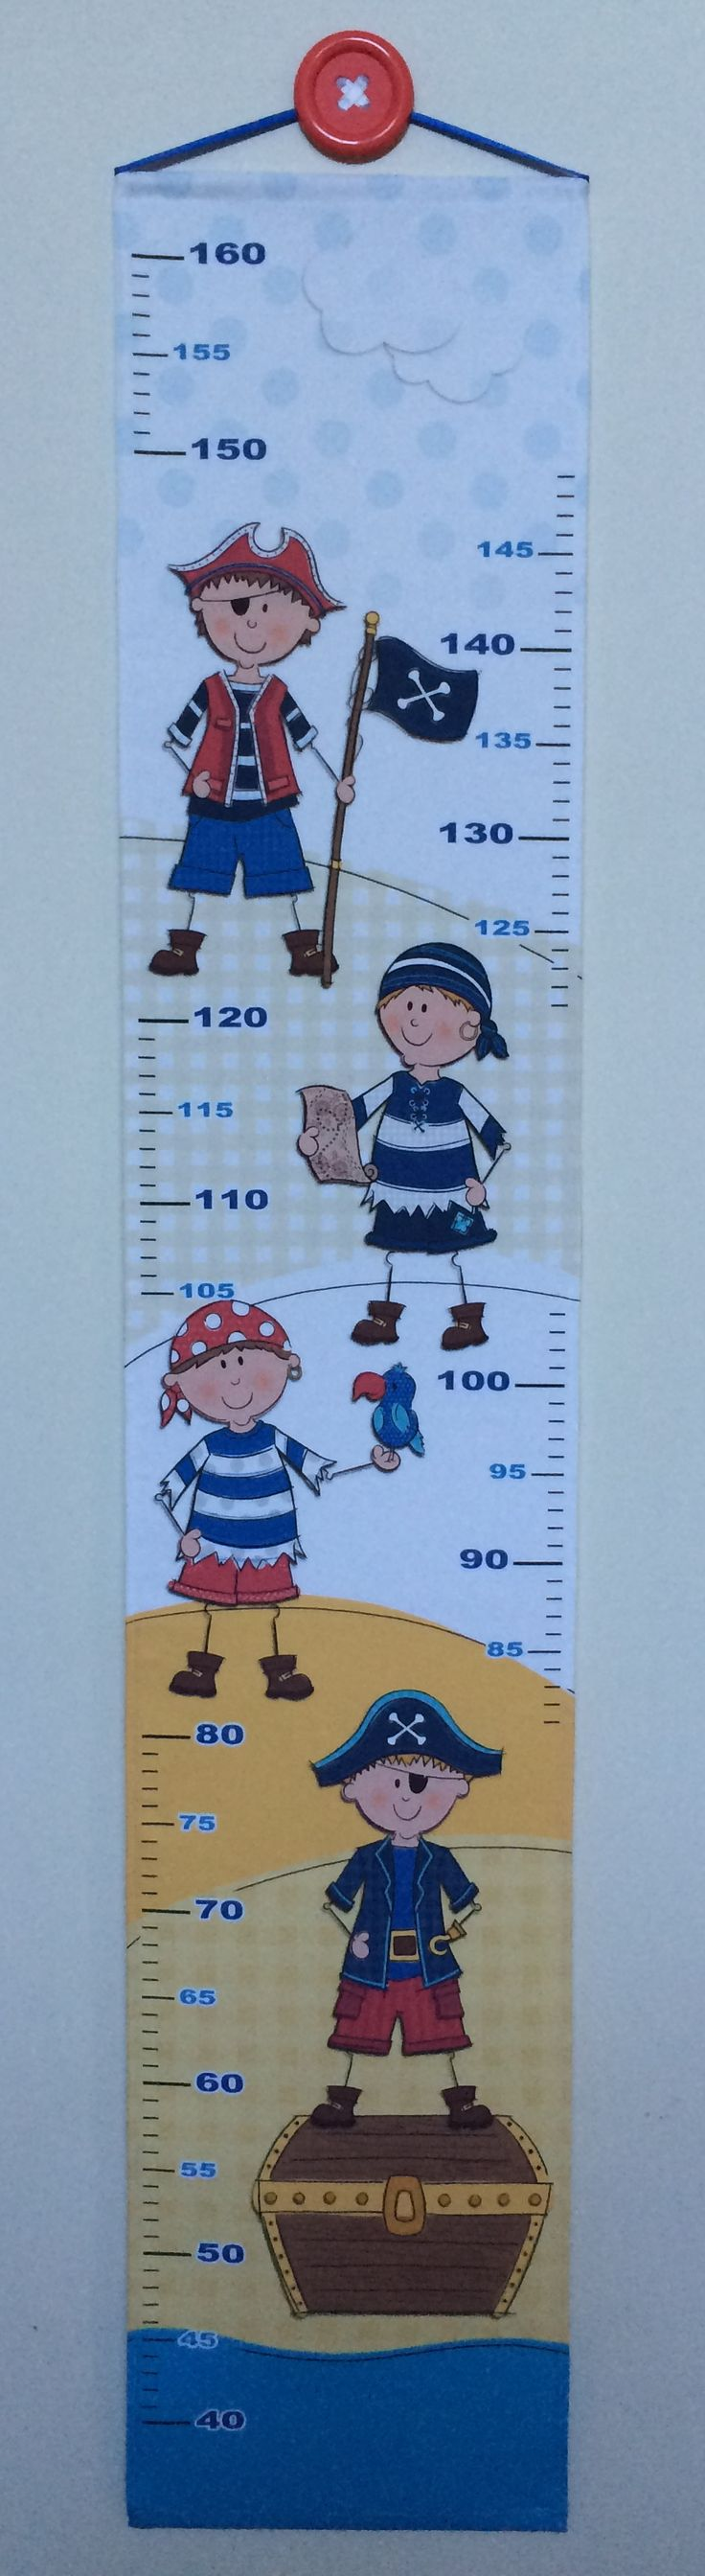 Pirates Height Chart Measurements from 40cm up to 160cms. Perfect to remember your little boys height at all his milestone ages.